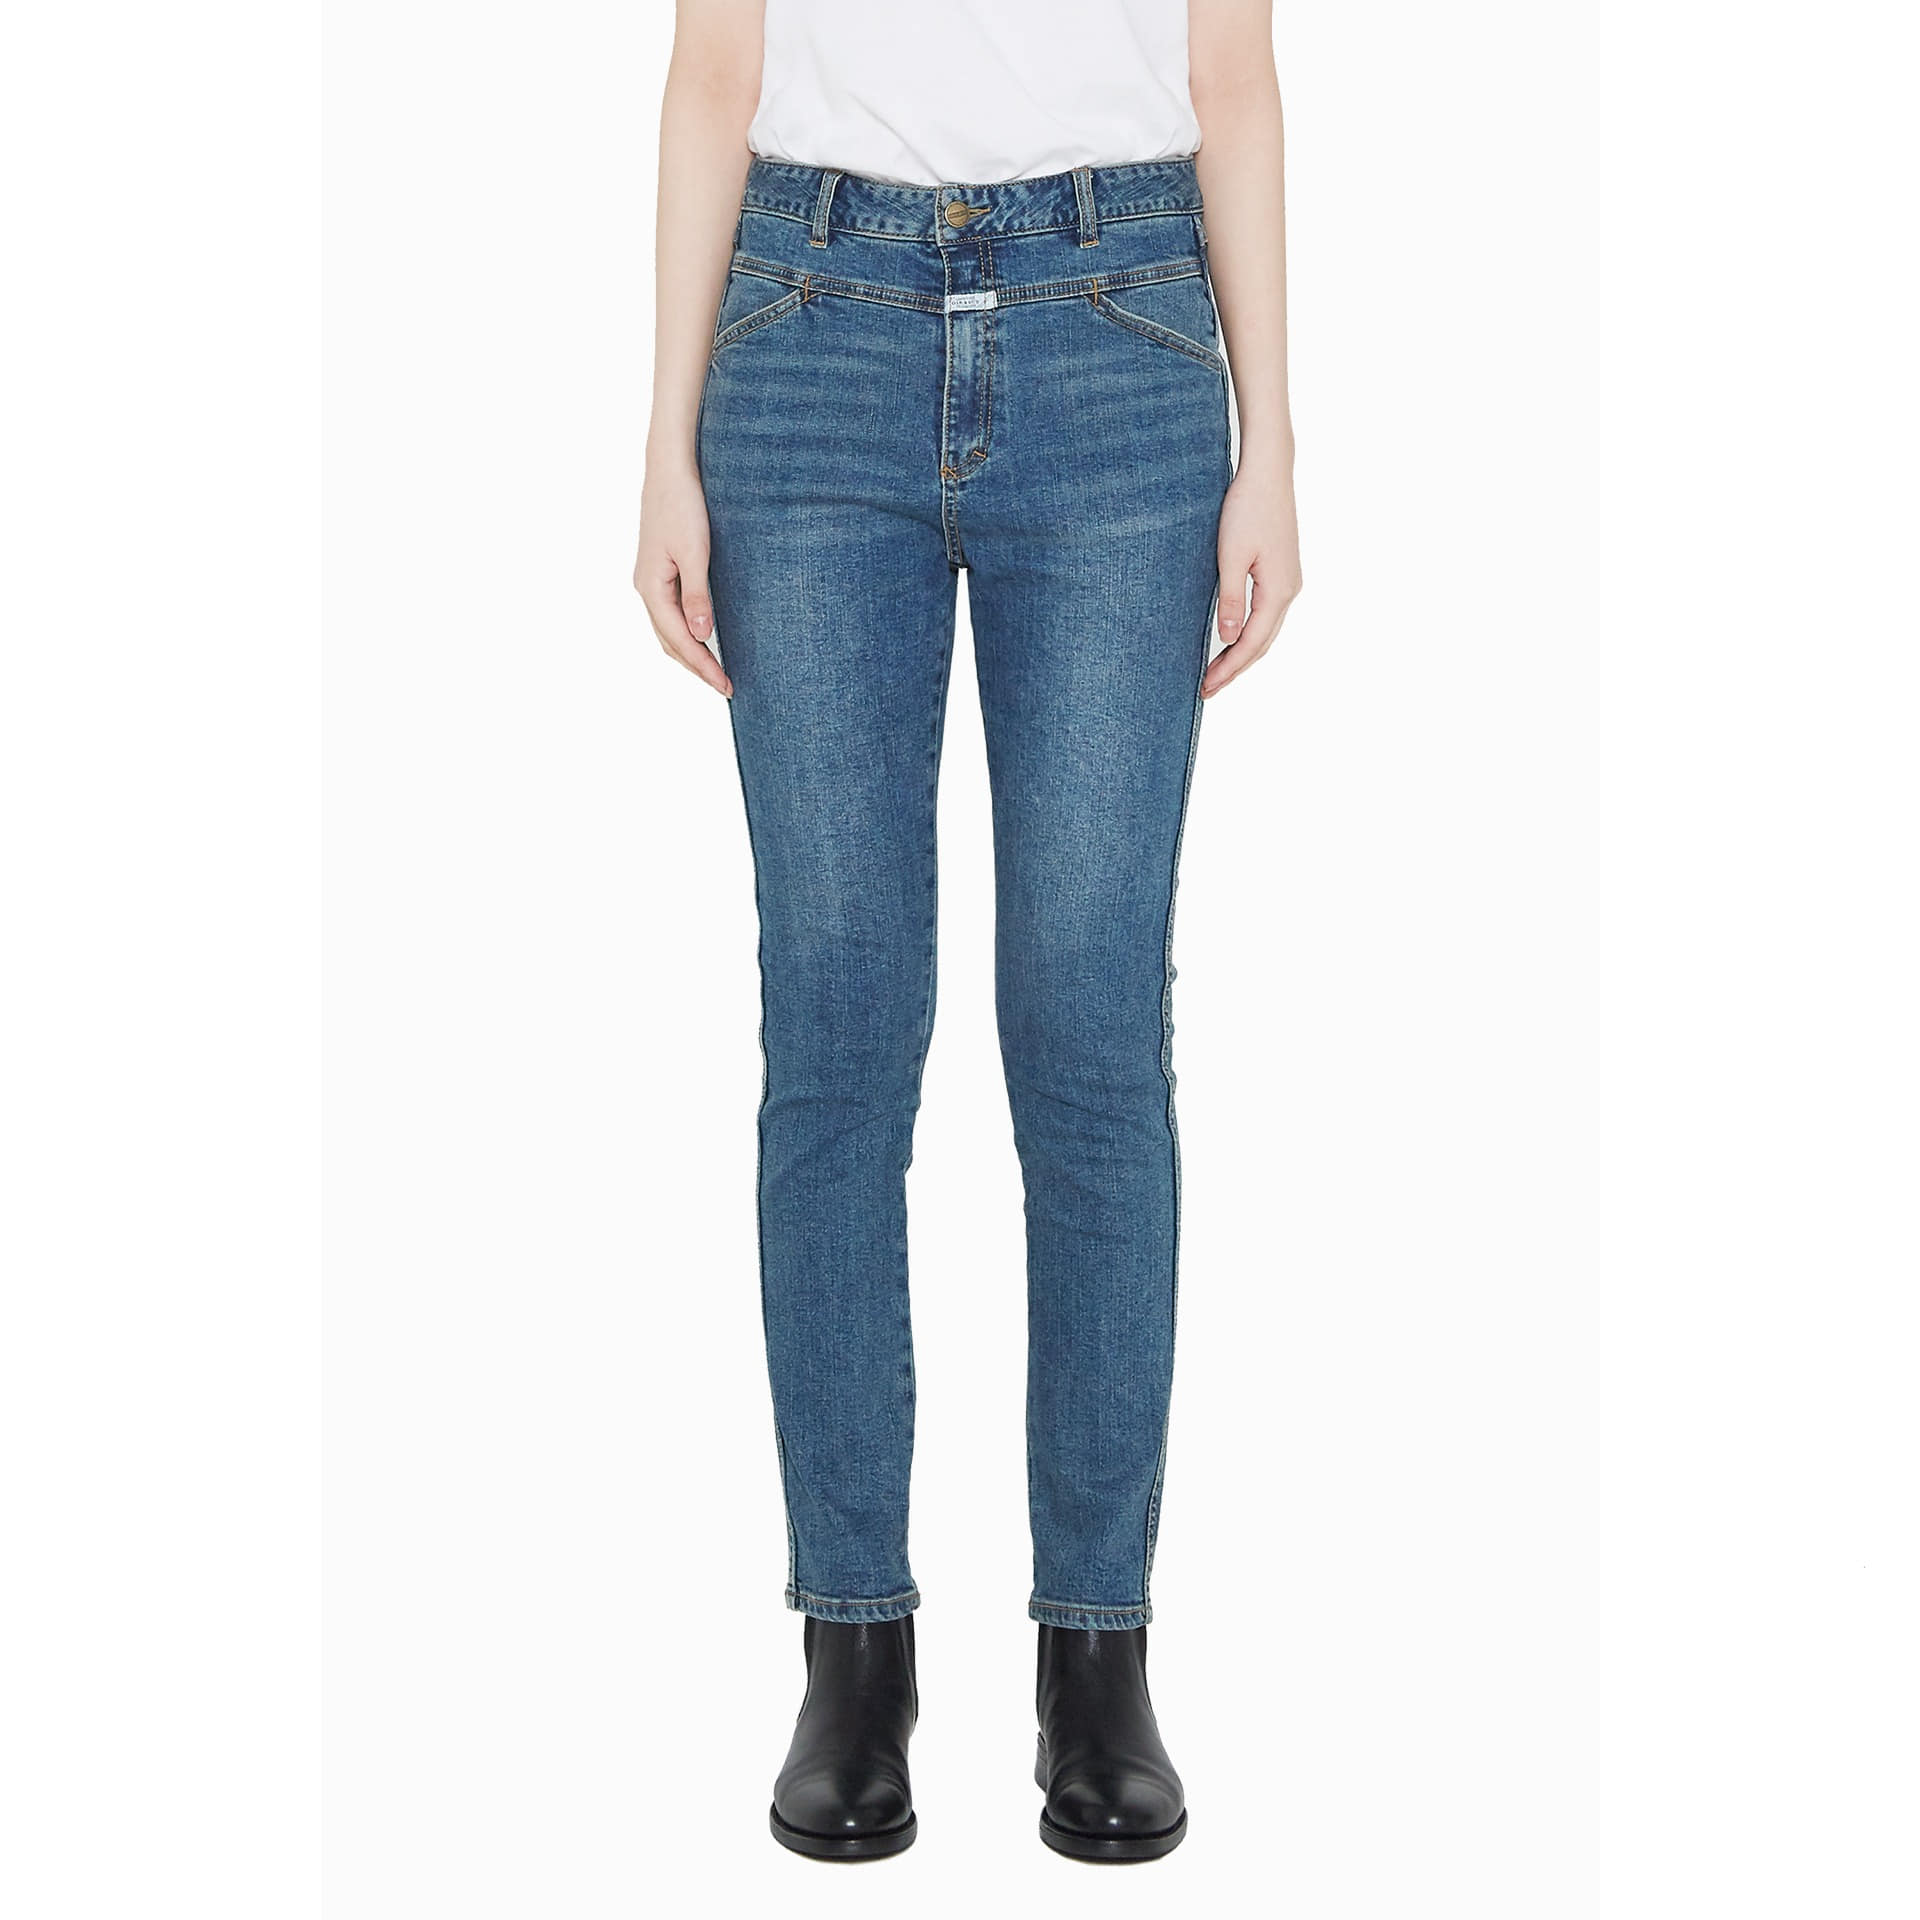 MFG SKINNY X-JEANS (WOMEN) stone blue